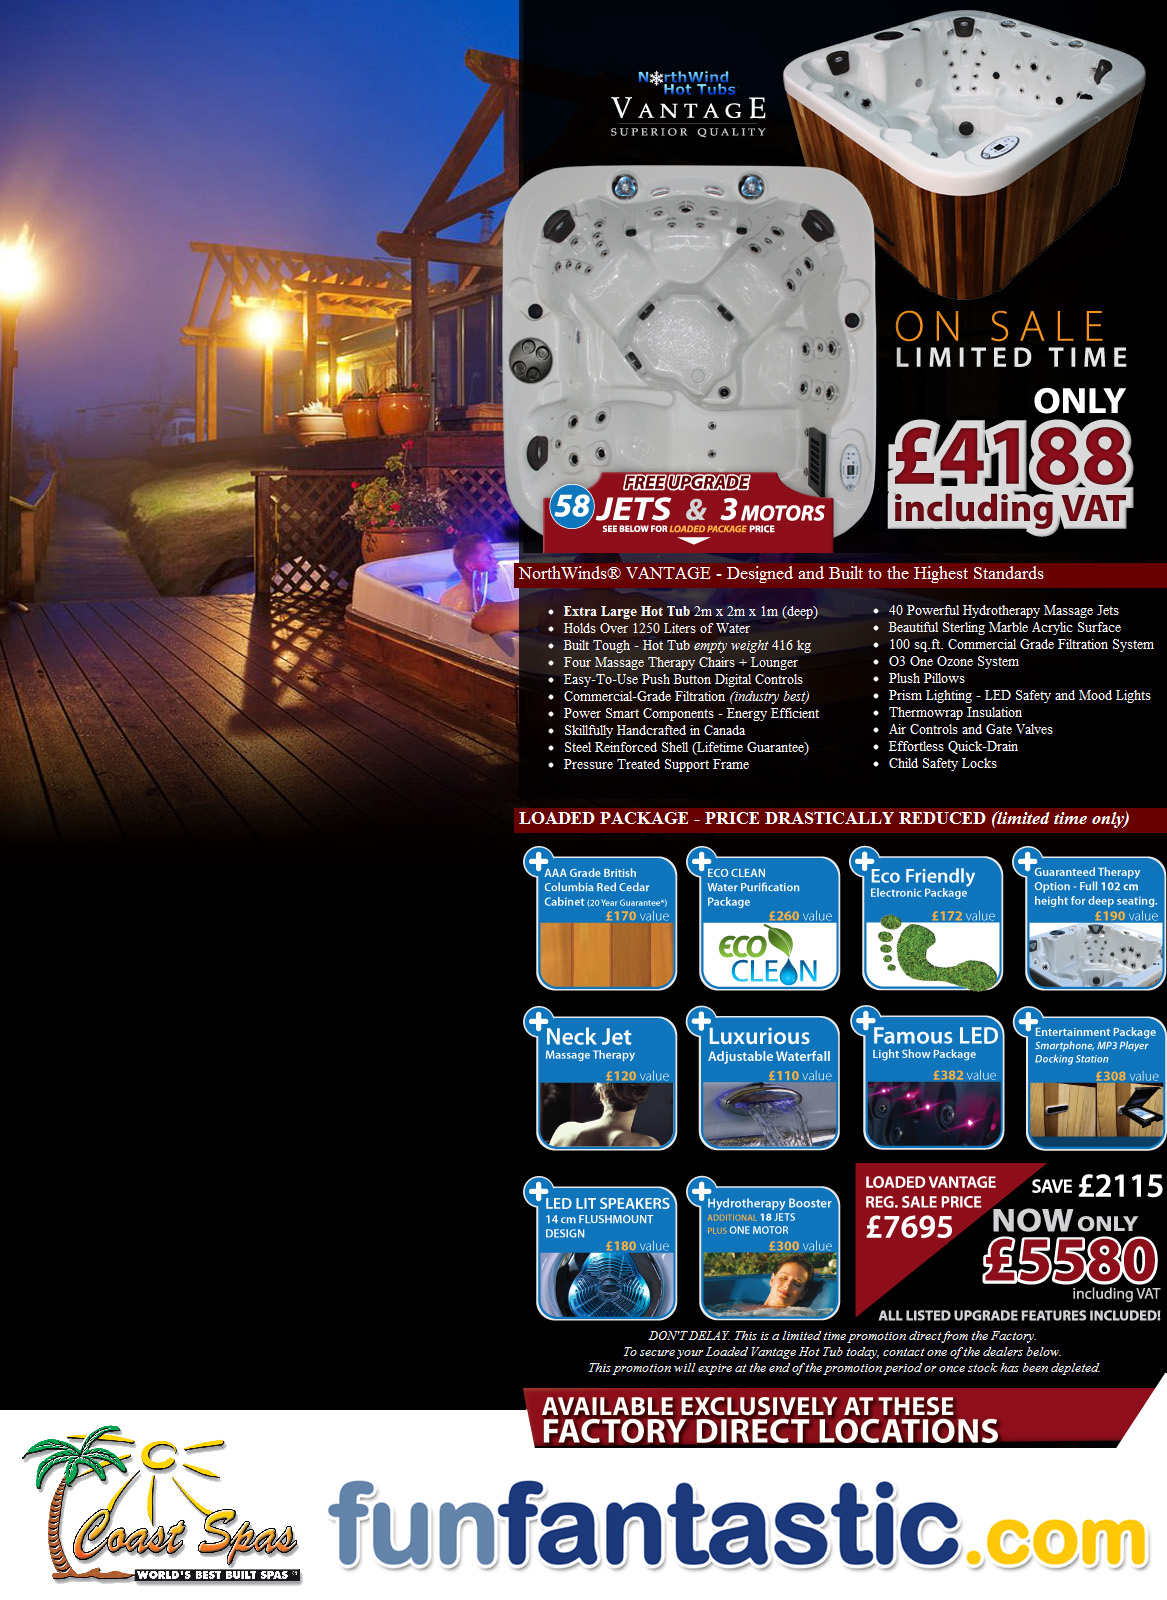 Fun Fantastic Uk Ltd French In Ground Swimming Pool Safety Laws Wiring A Hot Tub Canada Take Advantage Of Very Special Deal Directly From The Canadian Iso Accredited Coast Spas Factorydesigned And Built To Highest